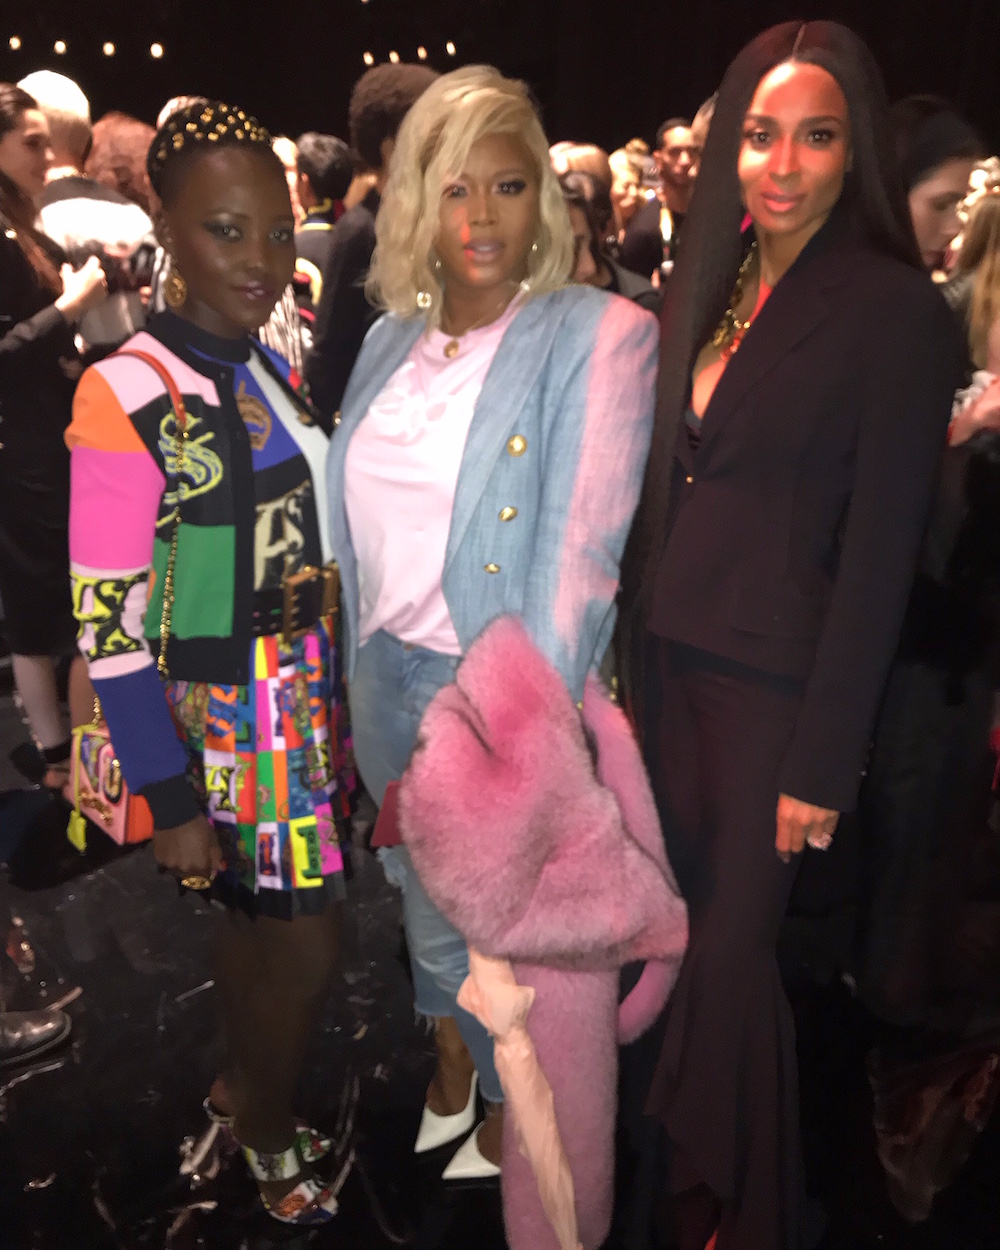 Versace Pre-Fall 2019 show at the Stock Exchange in Downtown Manhattan. 92